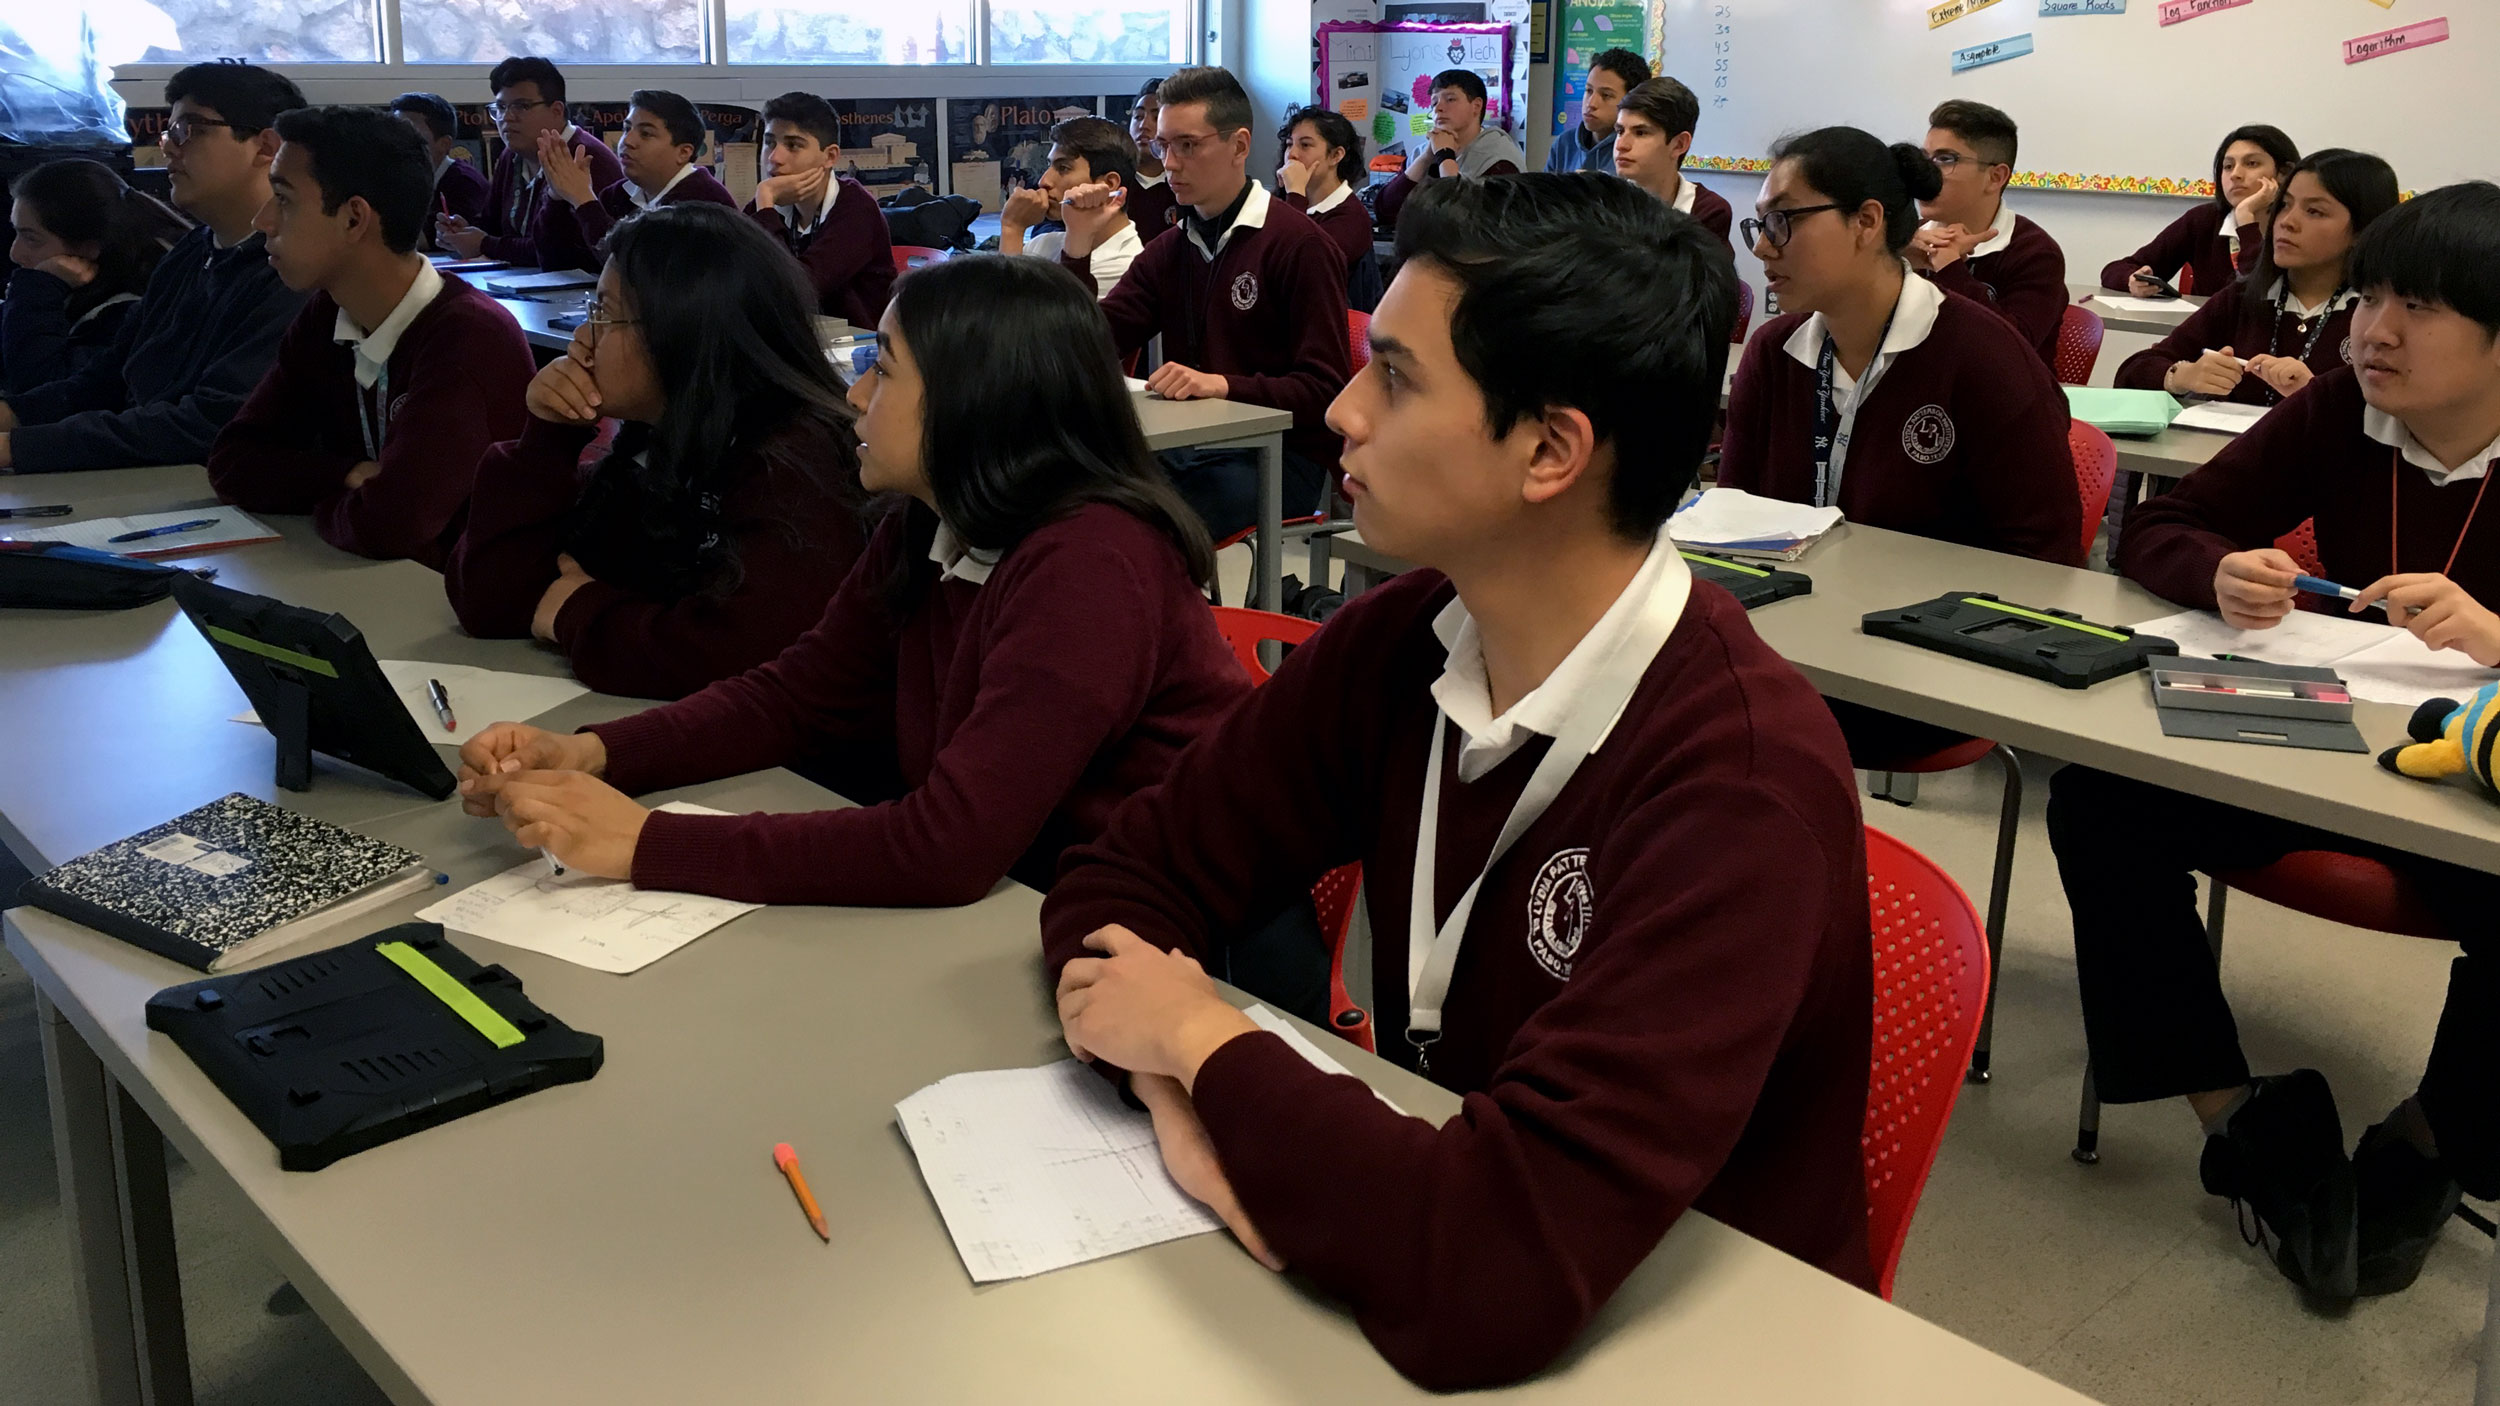 Students in maroon uniforms sit at desks and listen to a teacher, not pictured